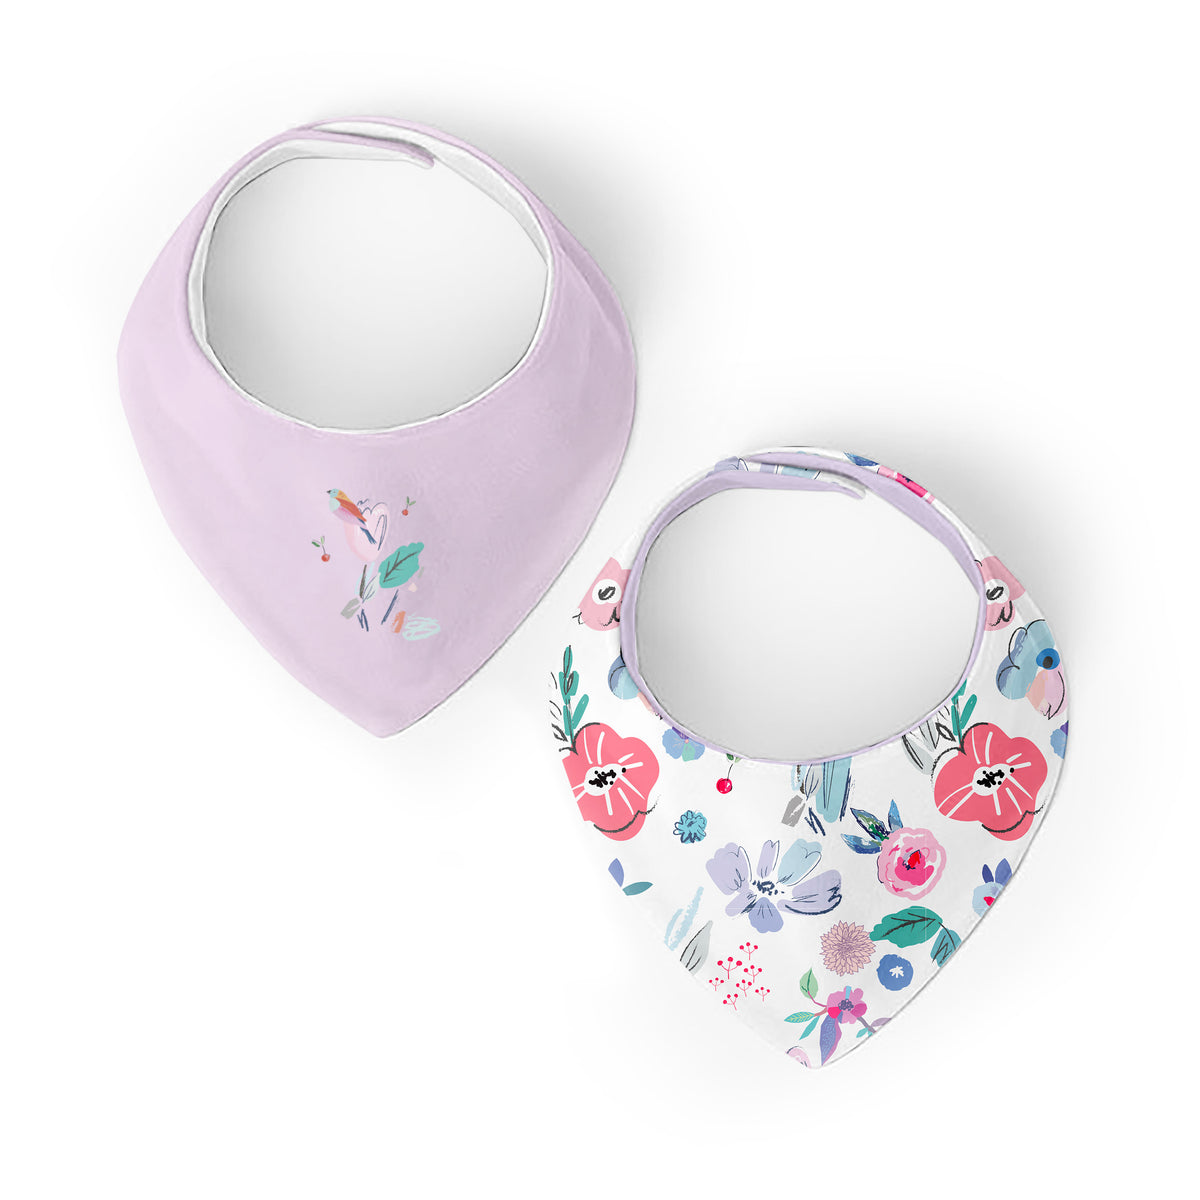 Flower | Bandana Bib | 2pack